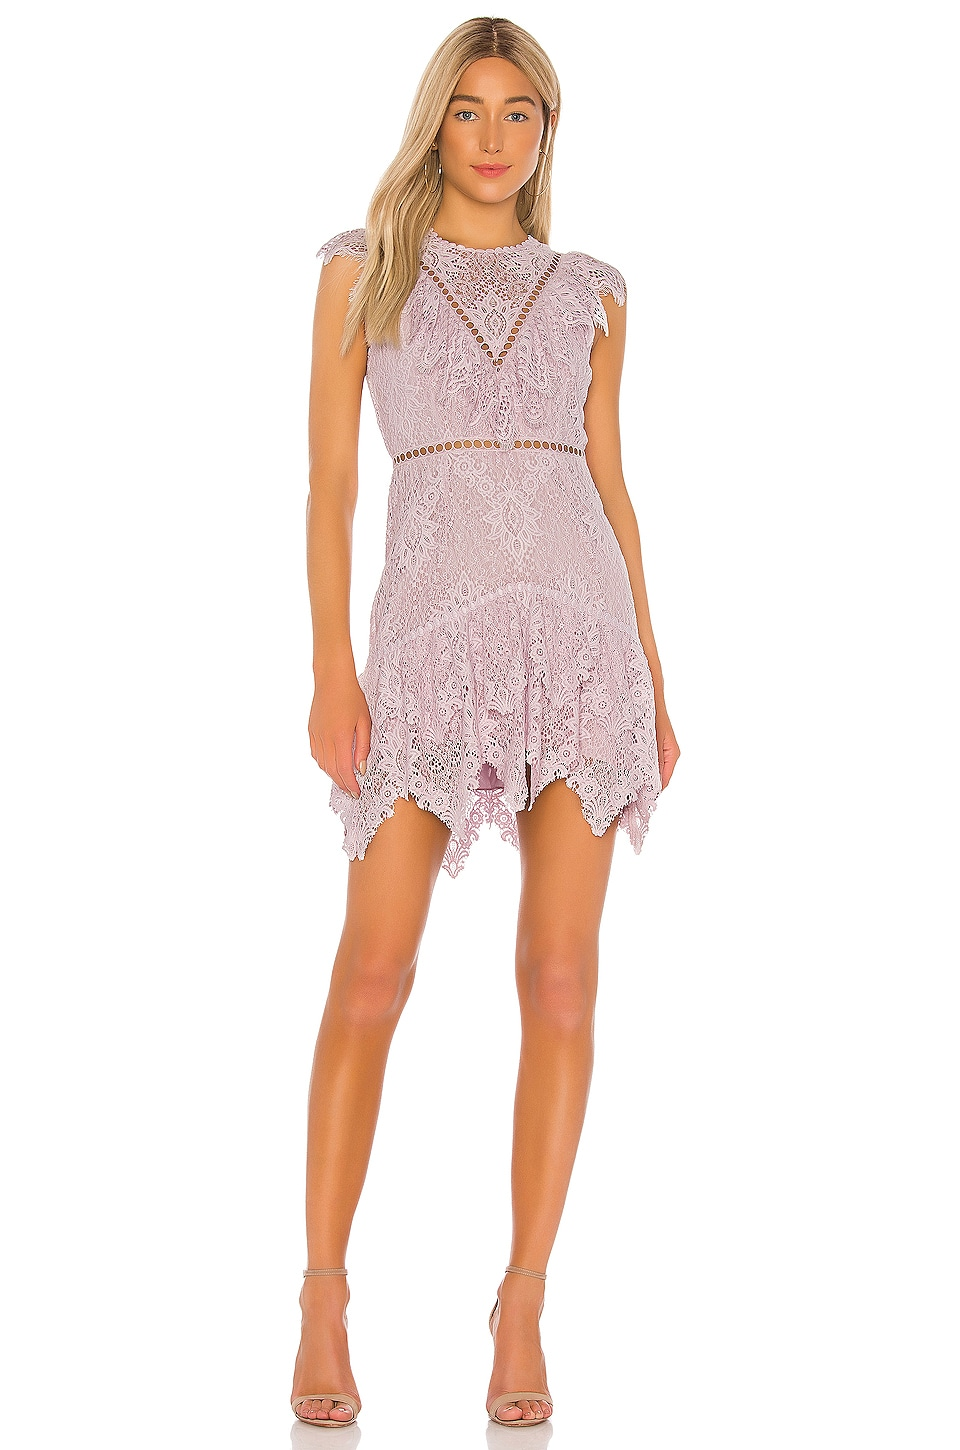 SAYLOR Kerry Dress in Orchid